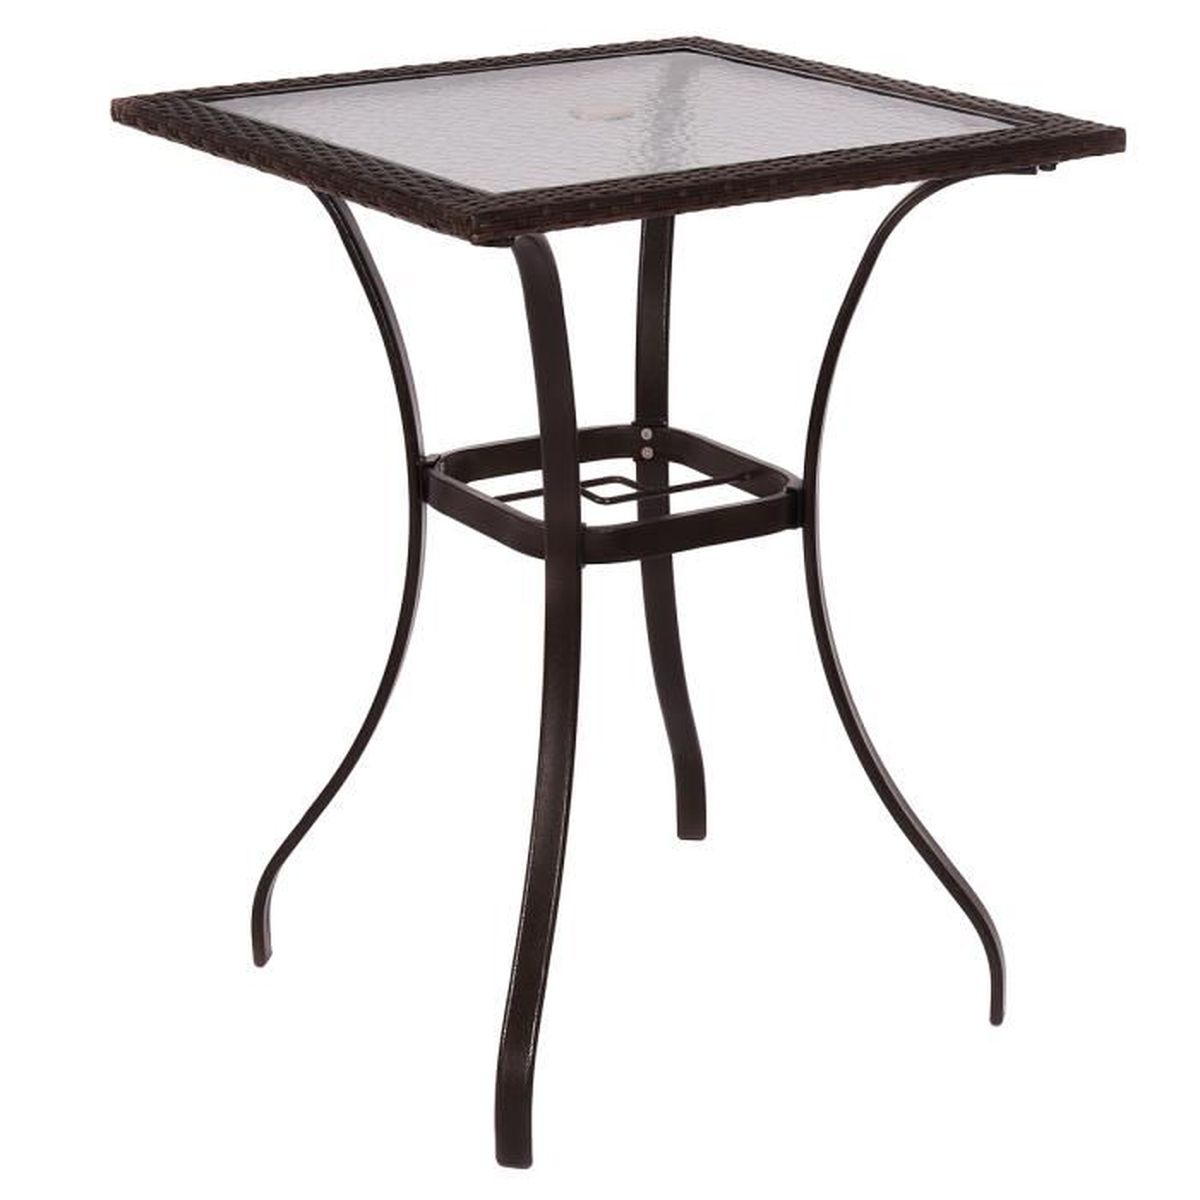 Table carr e en poly rotin la plaque de verre meuble de for Table en rotin et verre